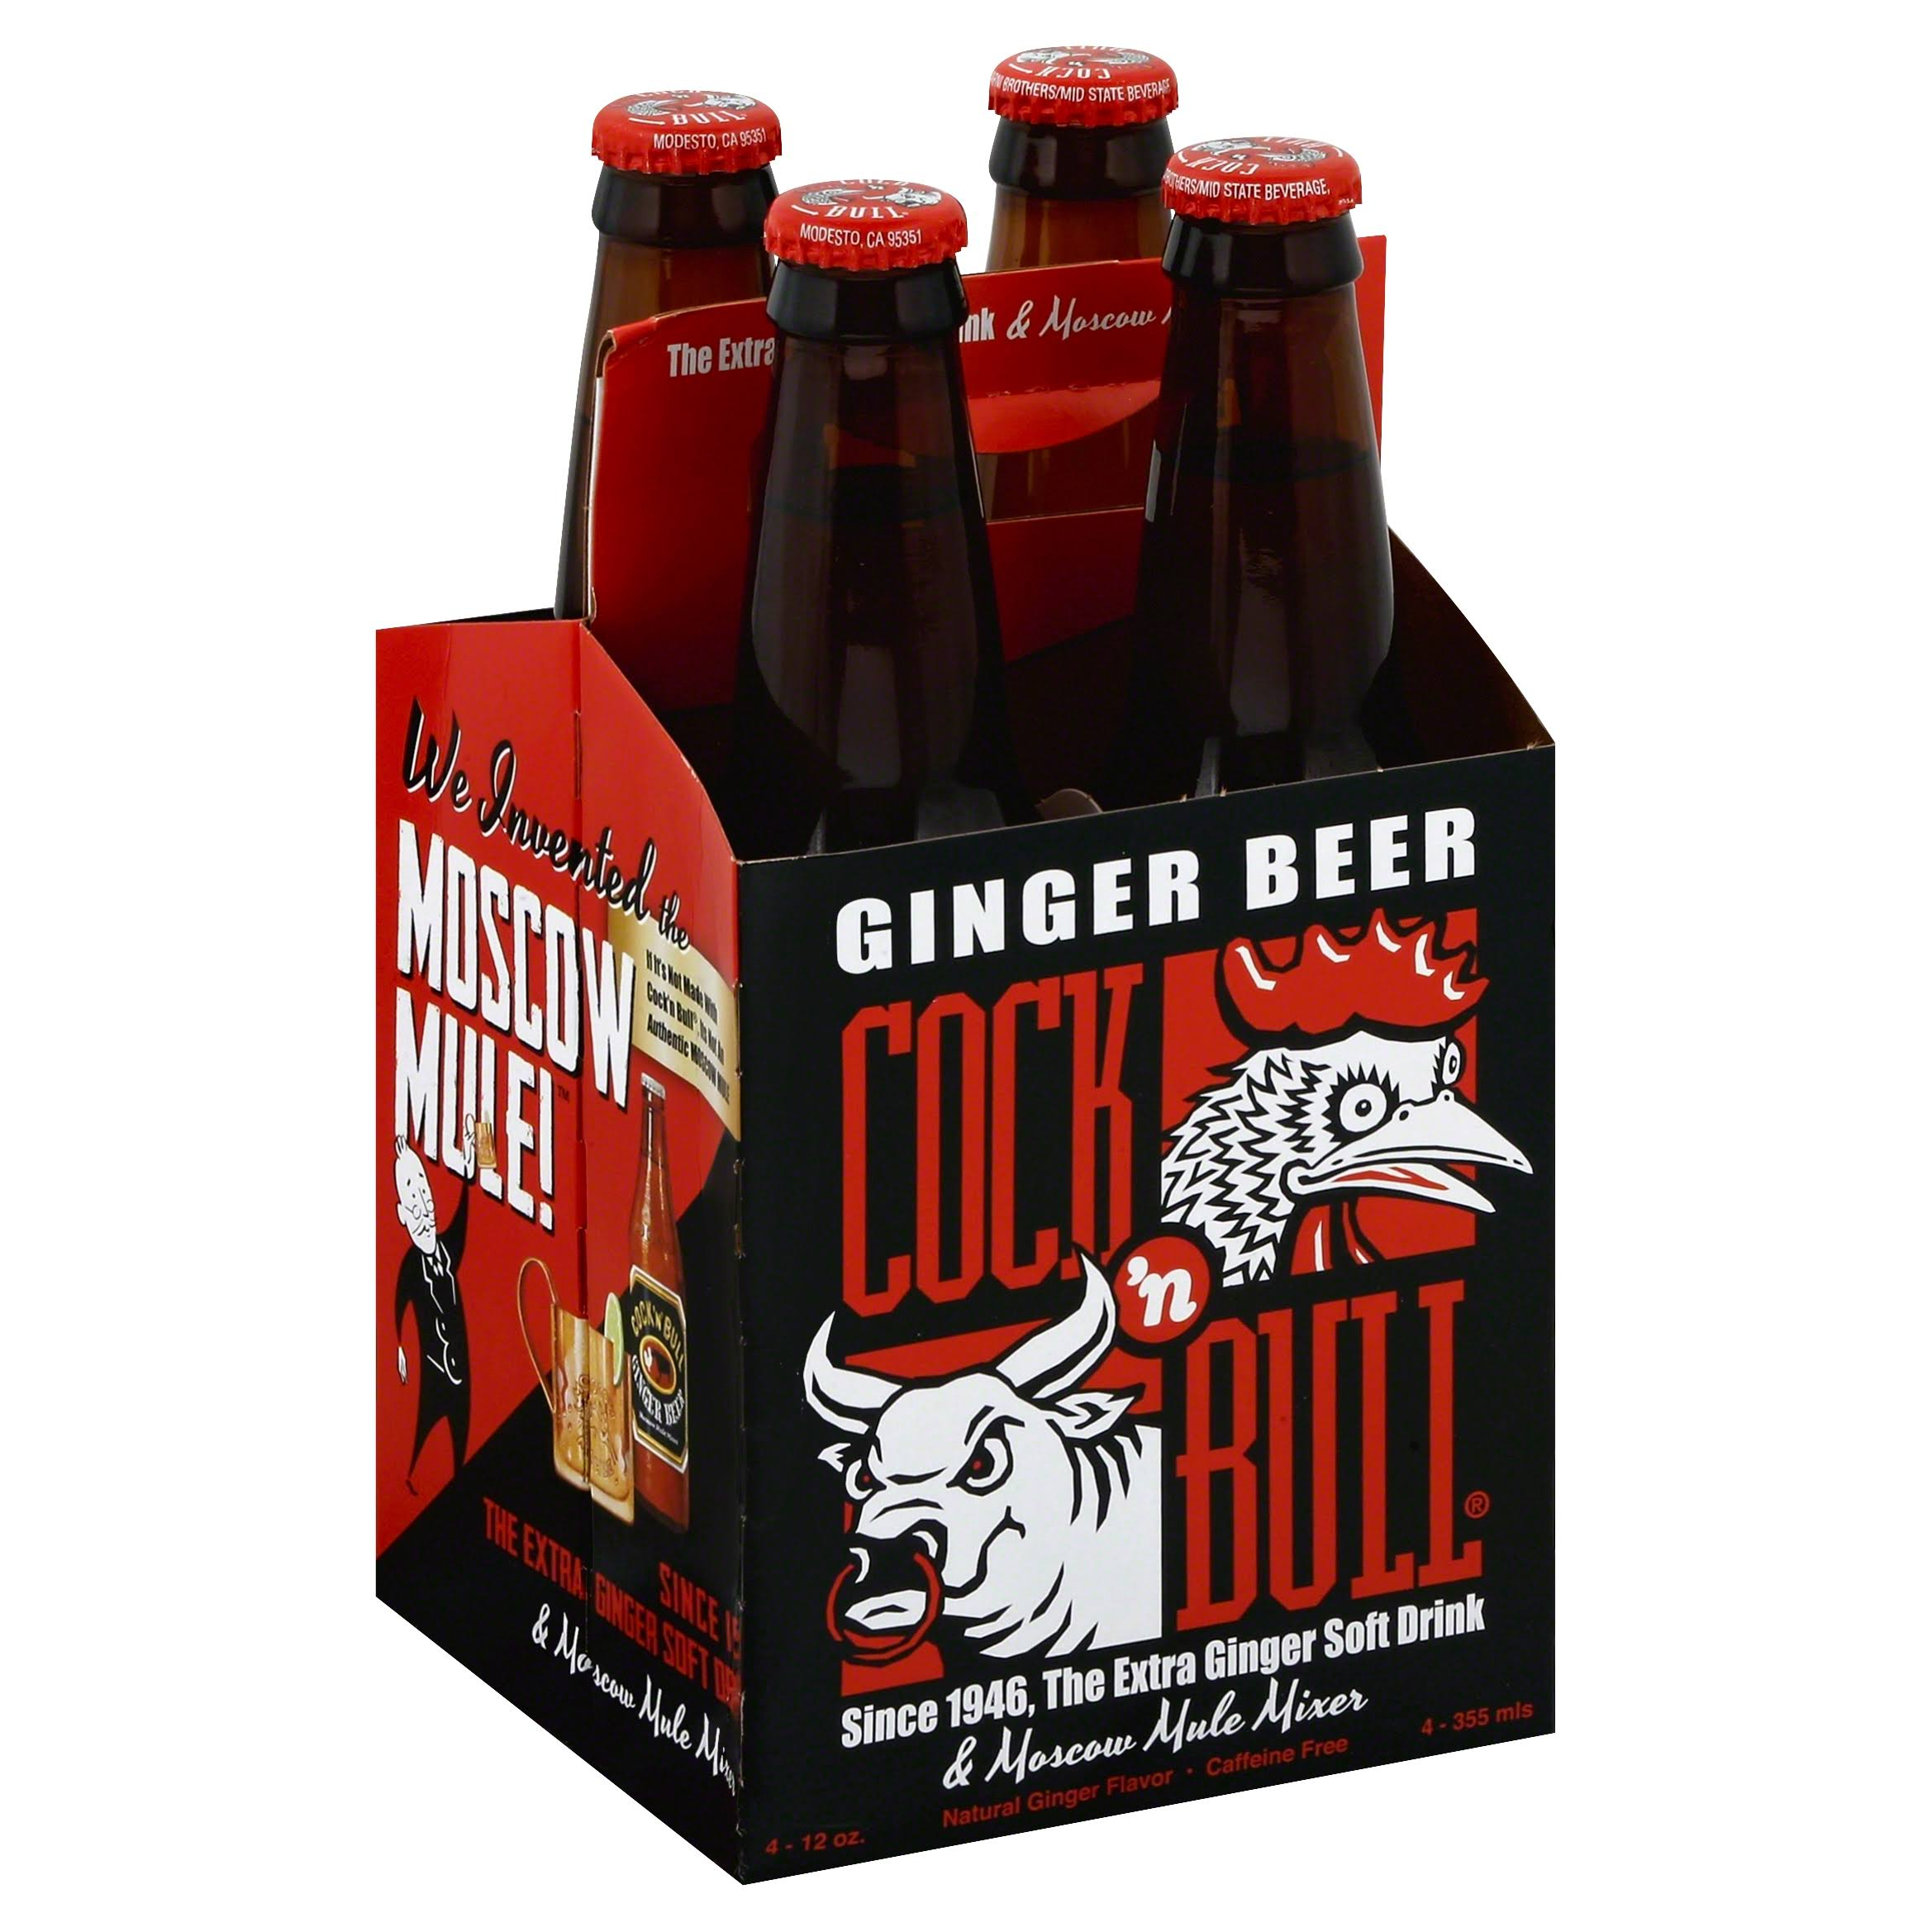 Cock & Bull Ginger Beer - 4 pack, 12 fl oz bottles